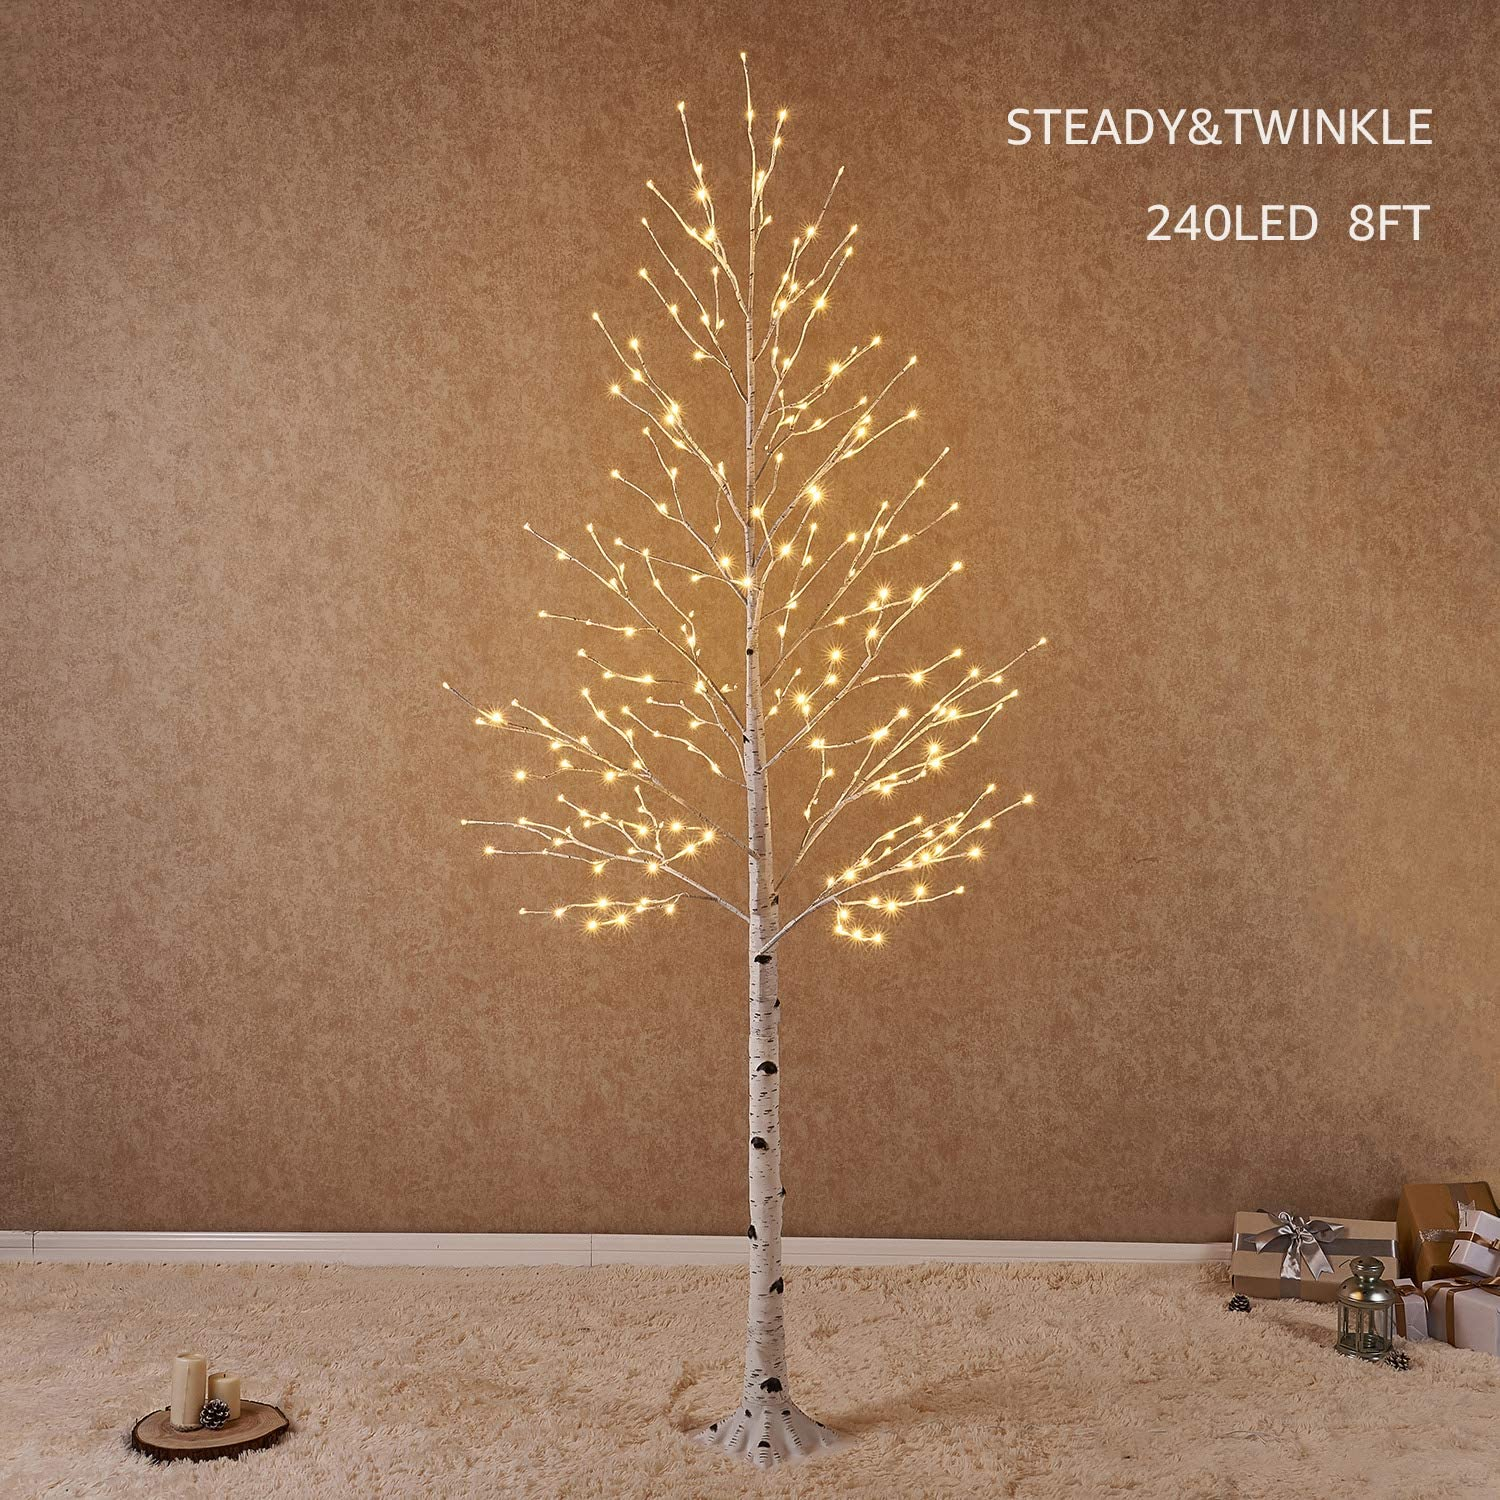 Hairui Pre Lit White Birch Tree 8FT 240L for Christmas Holiday Easter Wedding Party Decorations Tree Plug in Indoor Outdoor Use